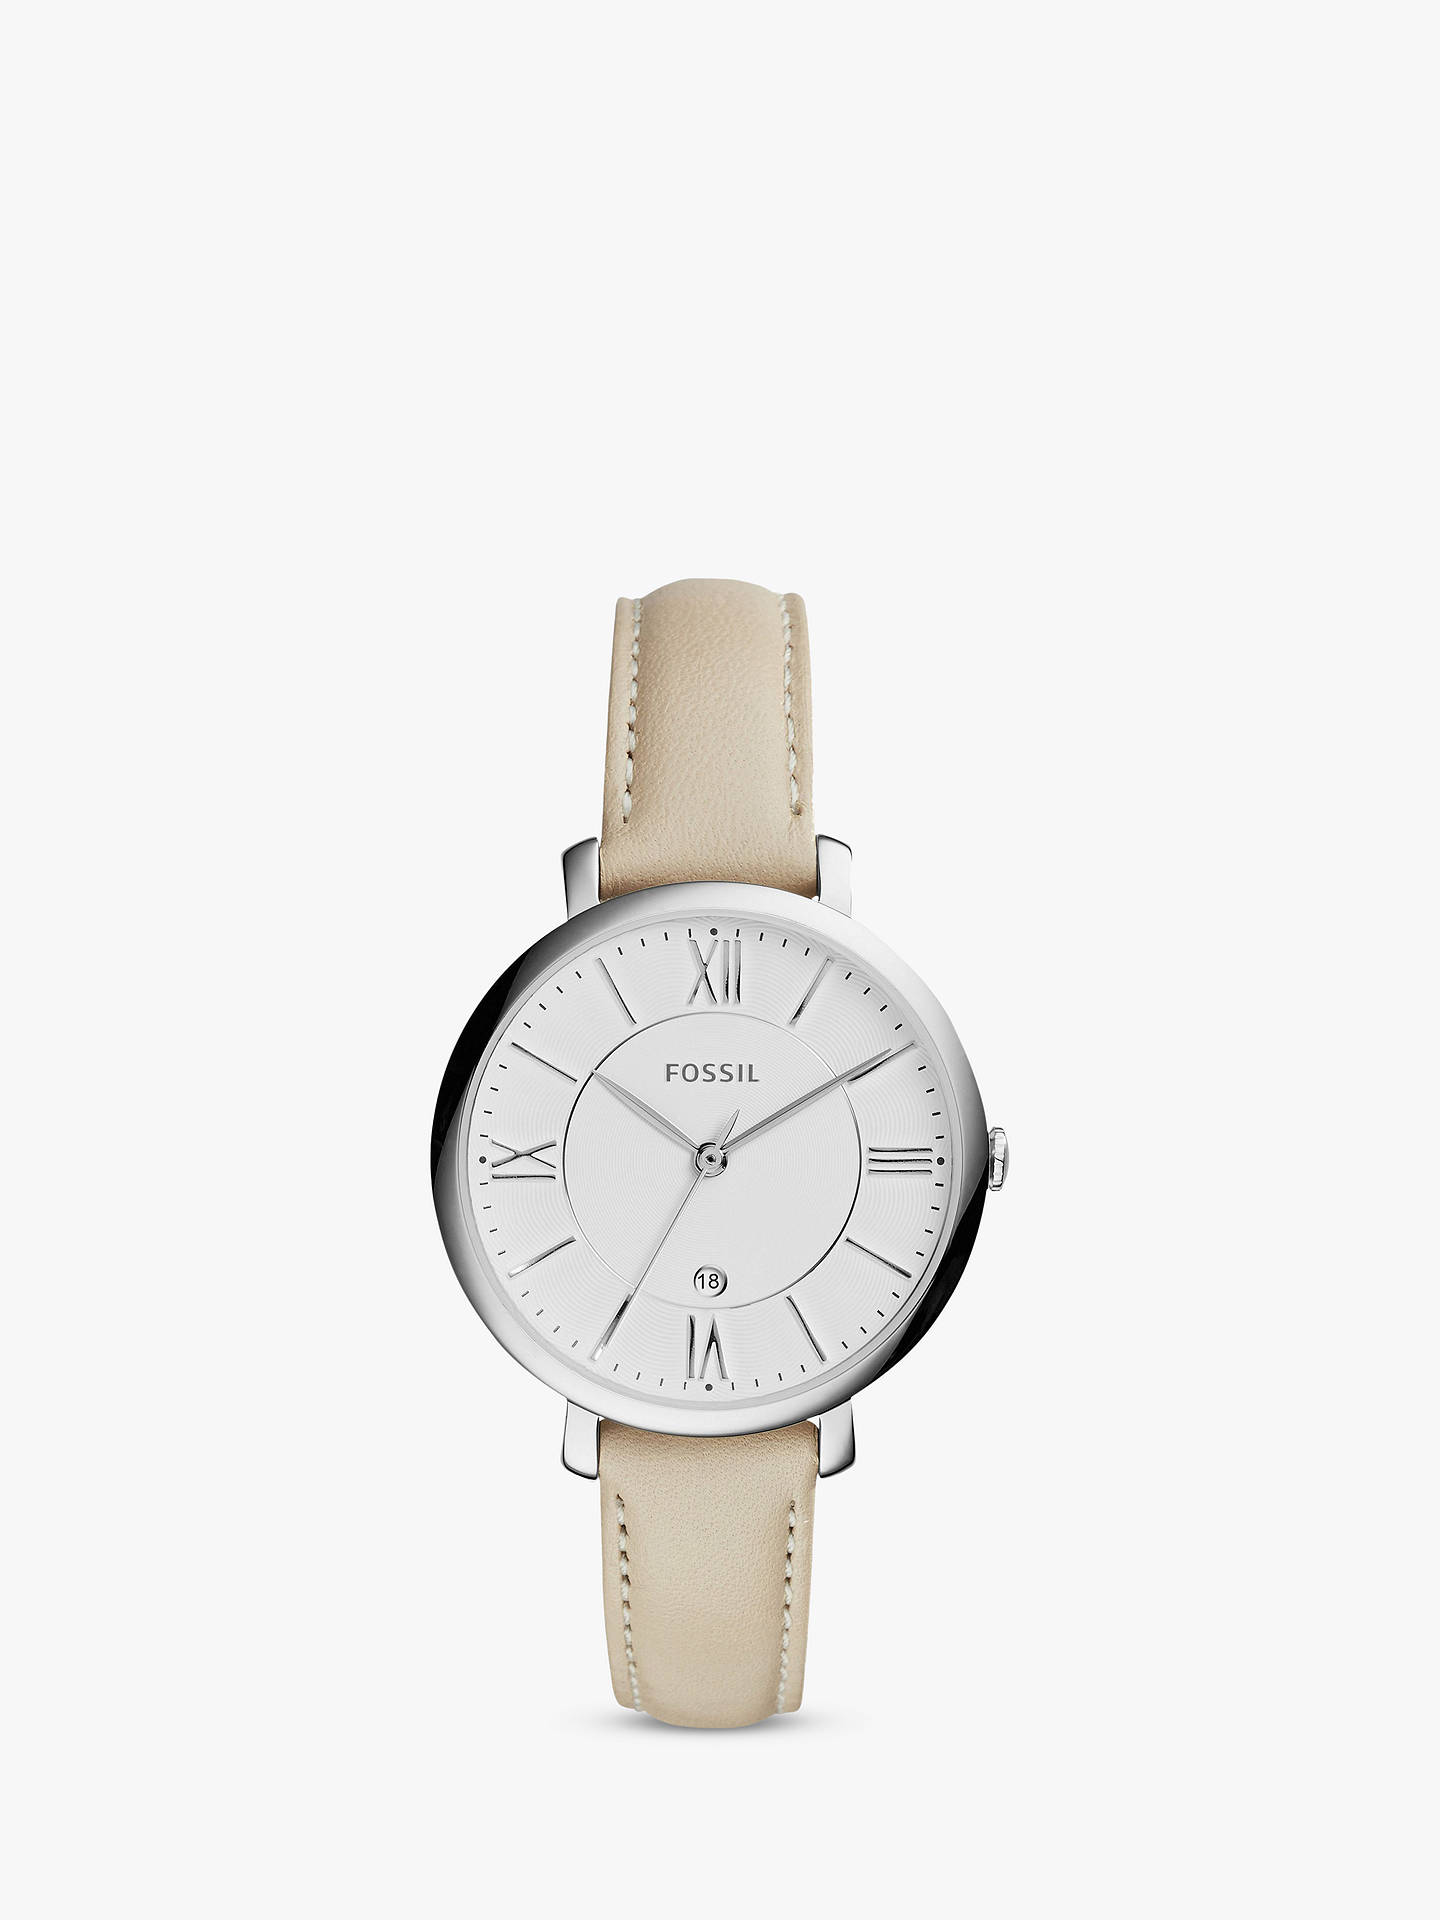 535f7e3ae48c Fossil Women s Jacqueline Date Leather Strap Watch at John Lewis ...